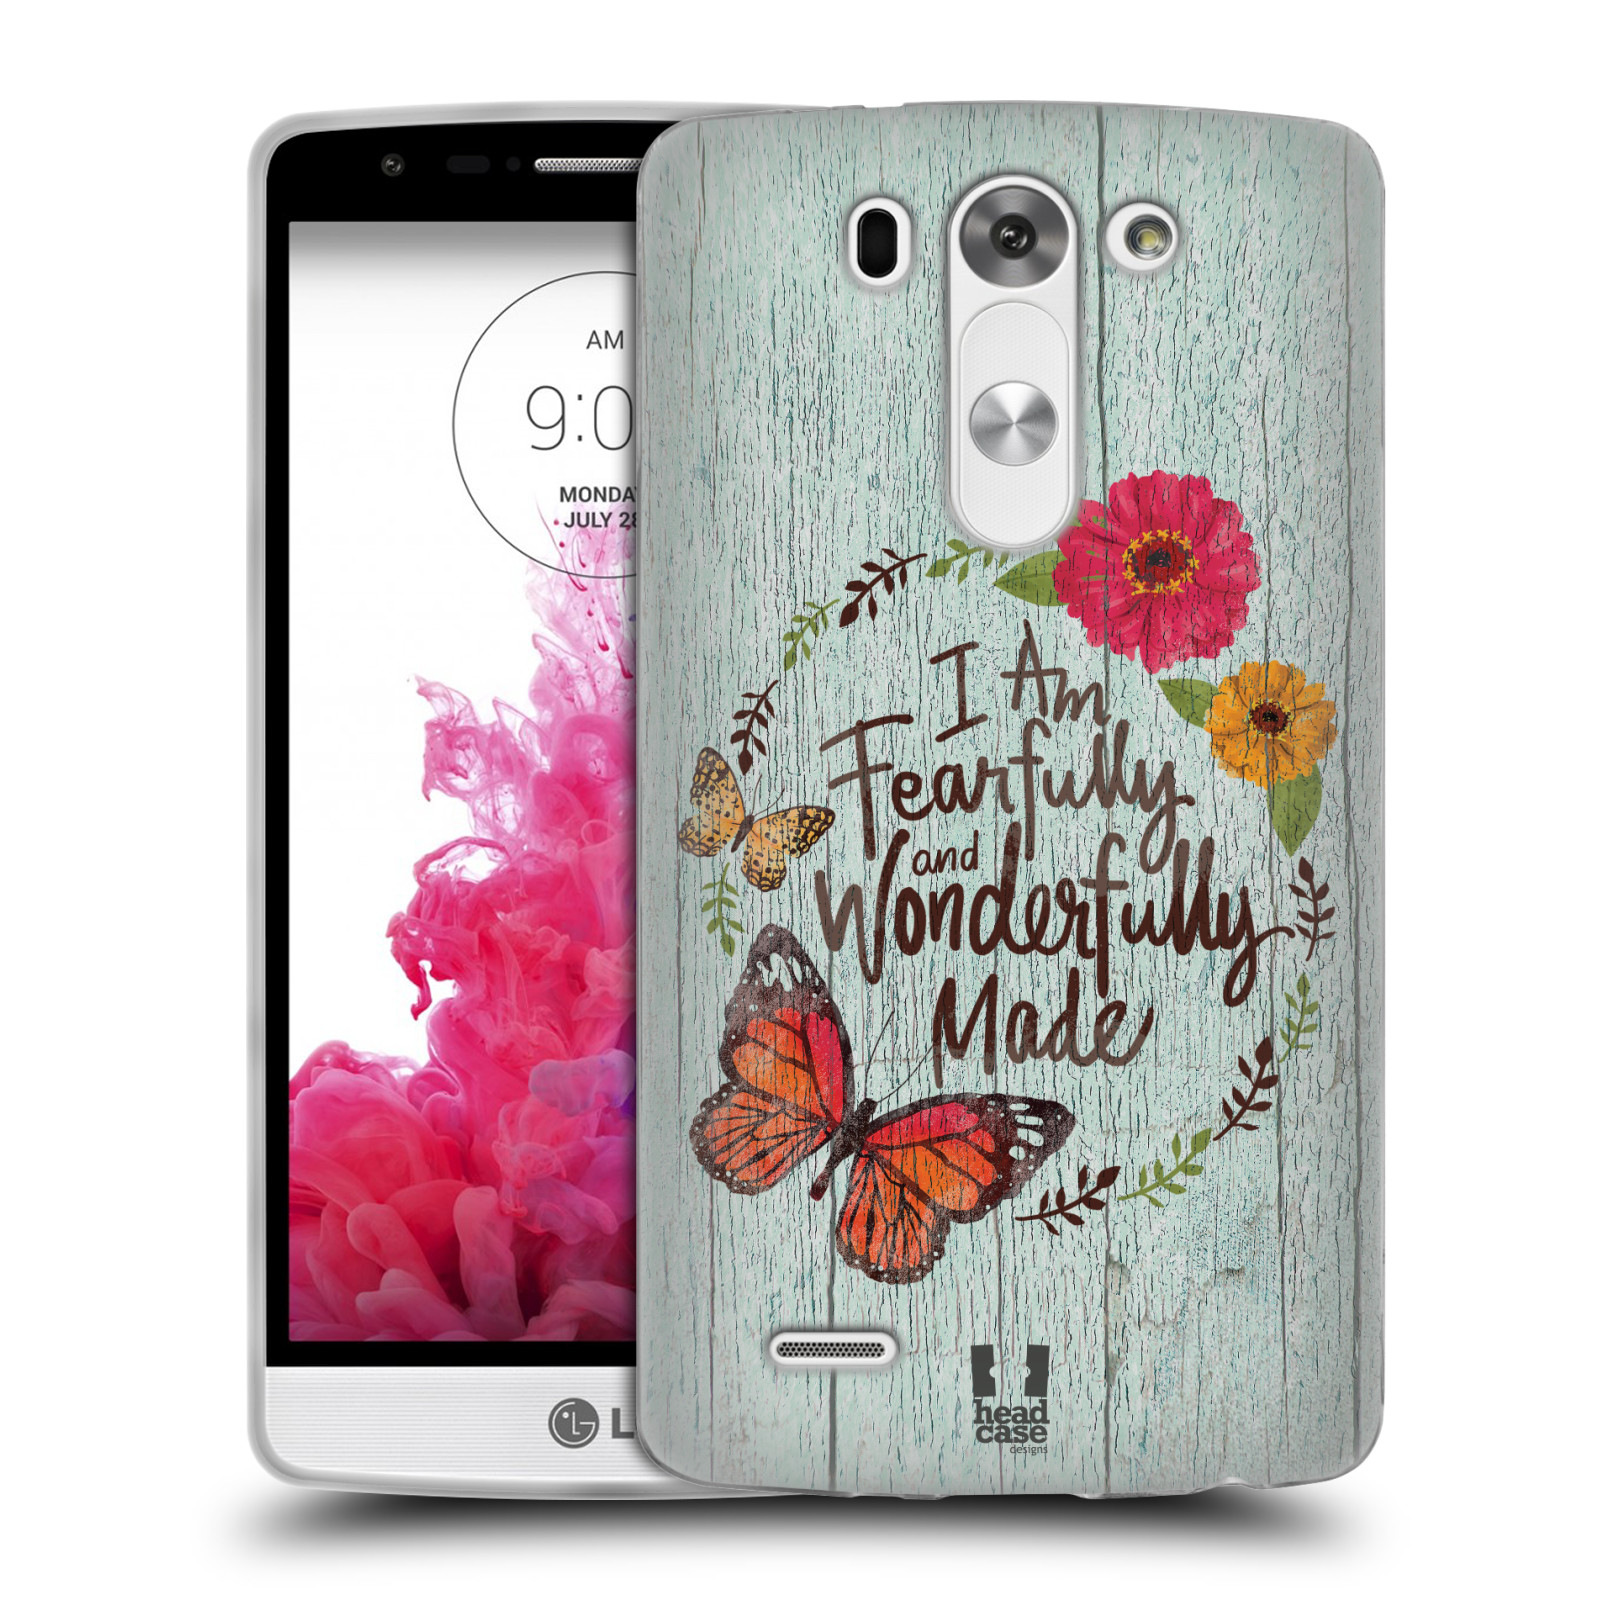 HEAD CASE COUNTRY CHARM SOFT GEL CASE FOR LG G3 S D722